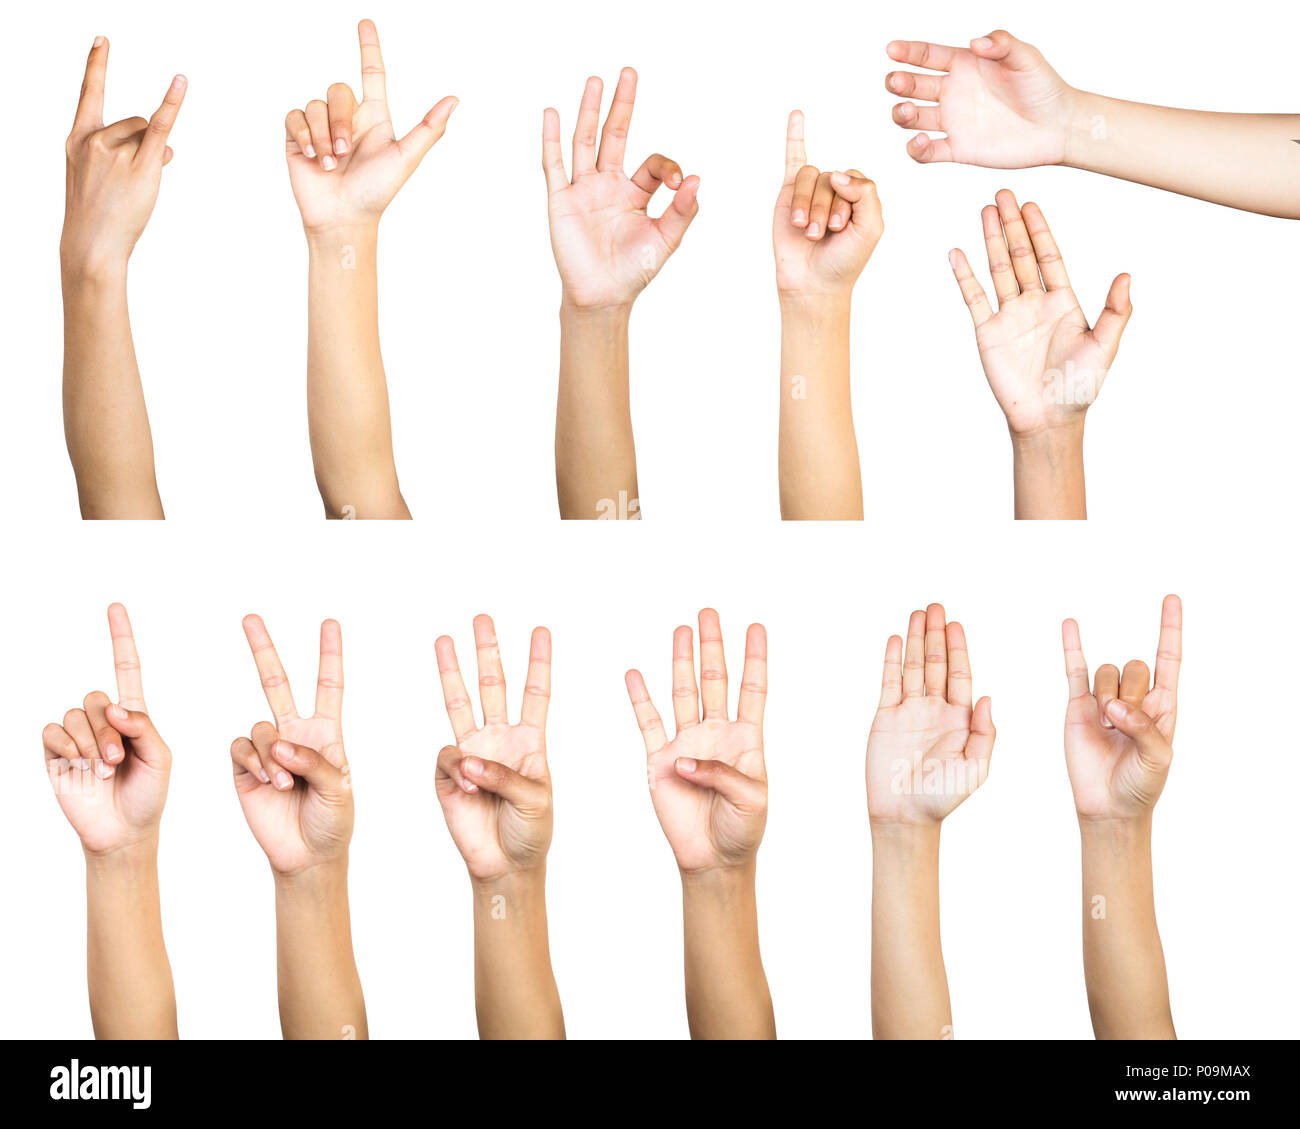 Clipping path of multiple female hand gesture isolated on white background. Isolation of hands count gesturing number or symbol on white background. - Stock Image